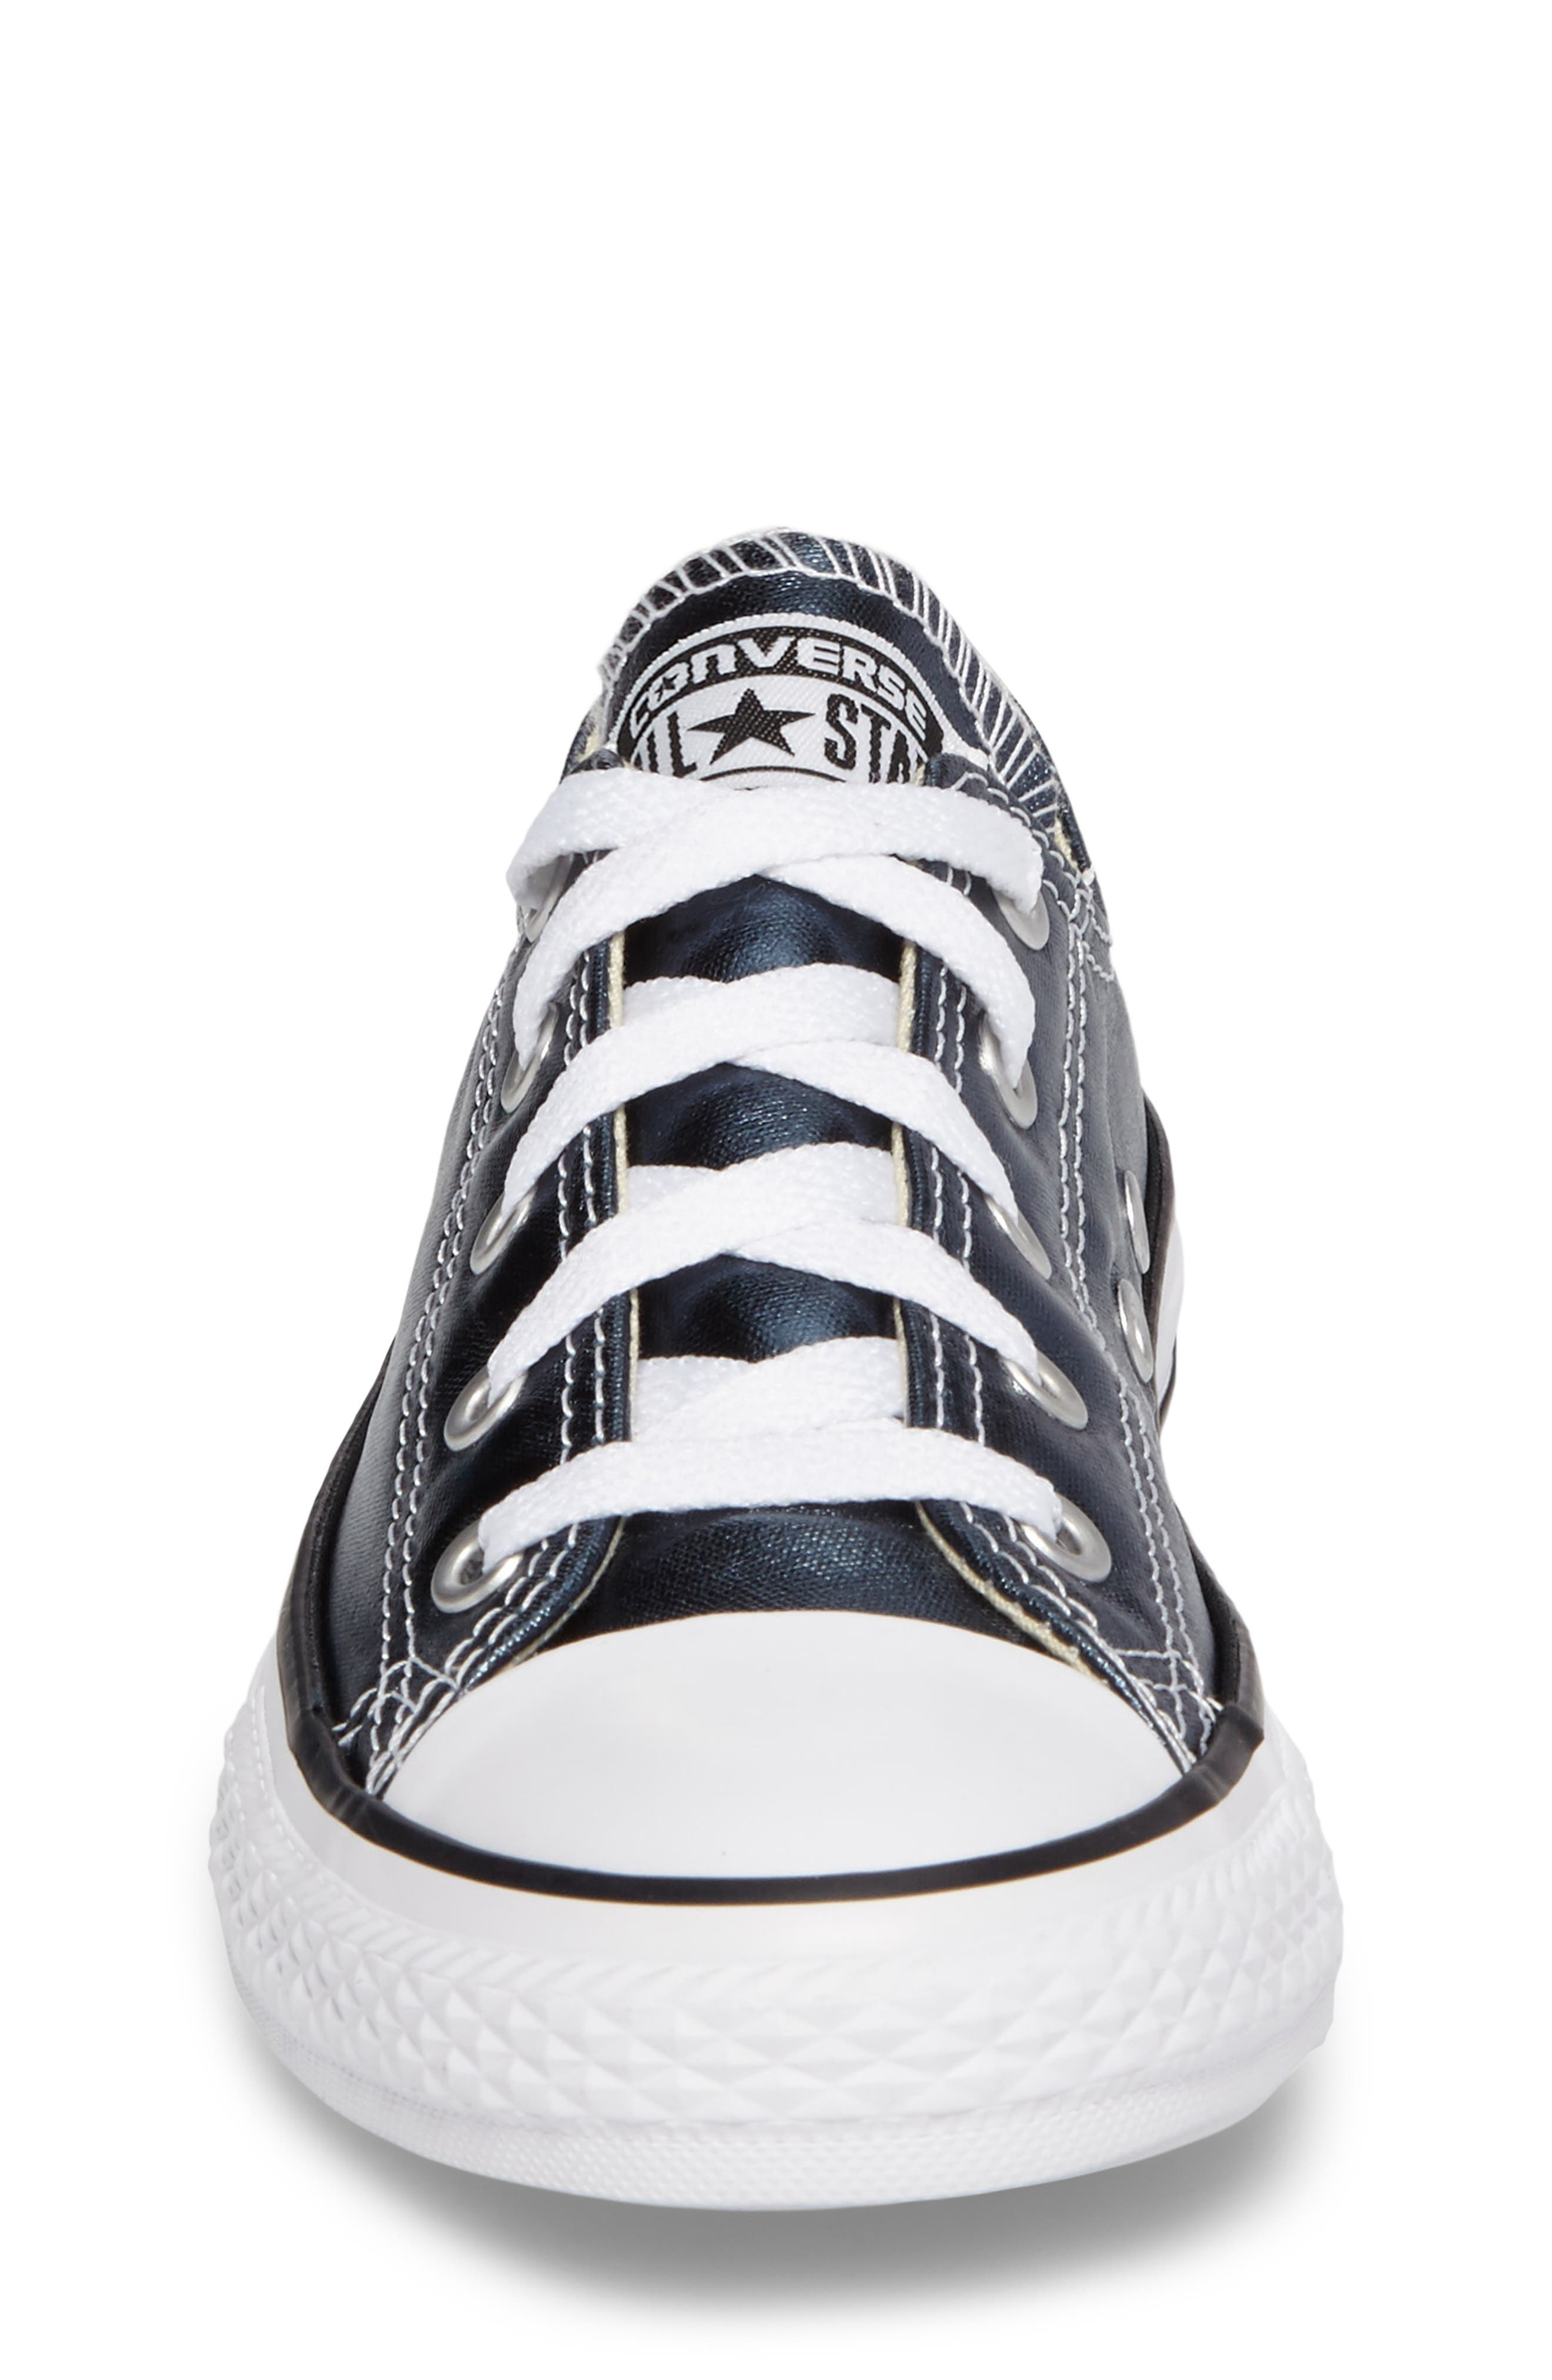 Chuck Taylor<sup>®</sup> All Star<sup>®</sup> Metallic Sneaker,                             Alternate thumbnail 4, color,                             Blue Metallic Coated Canvas